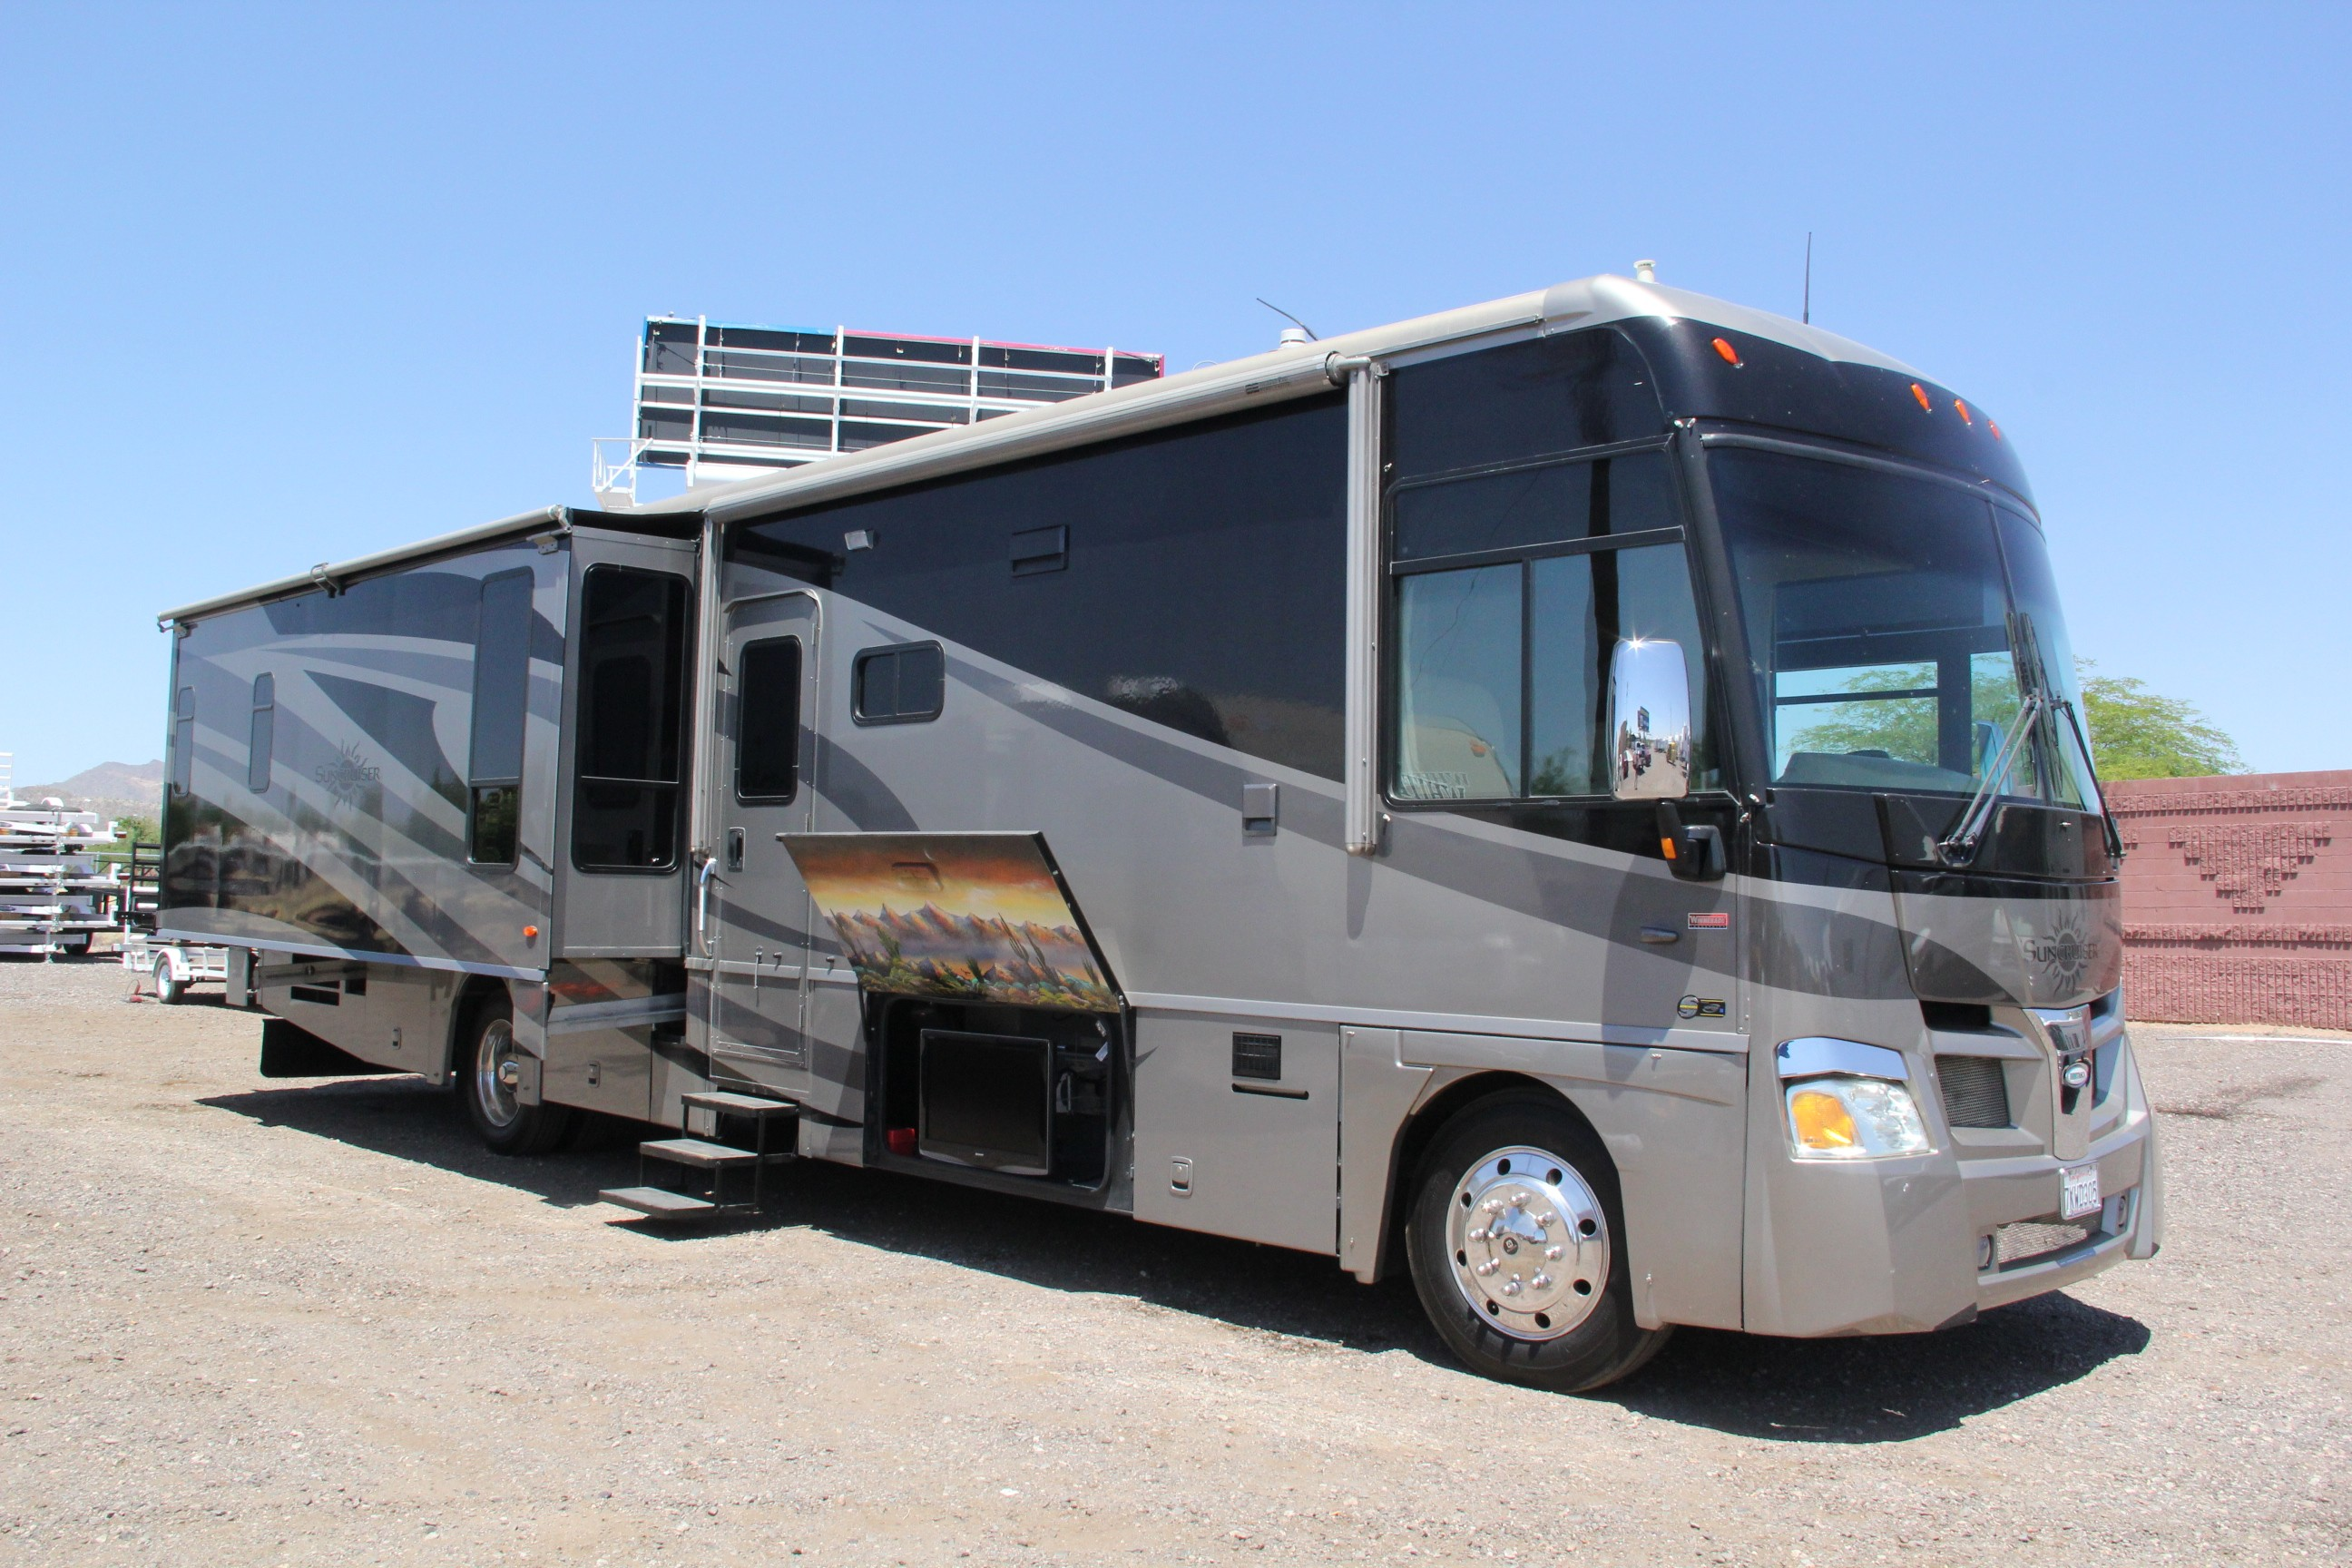 Nada Blue Bookused Motor Homes Class A 46